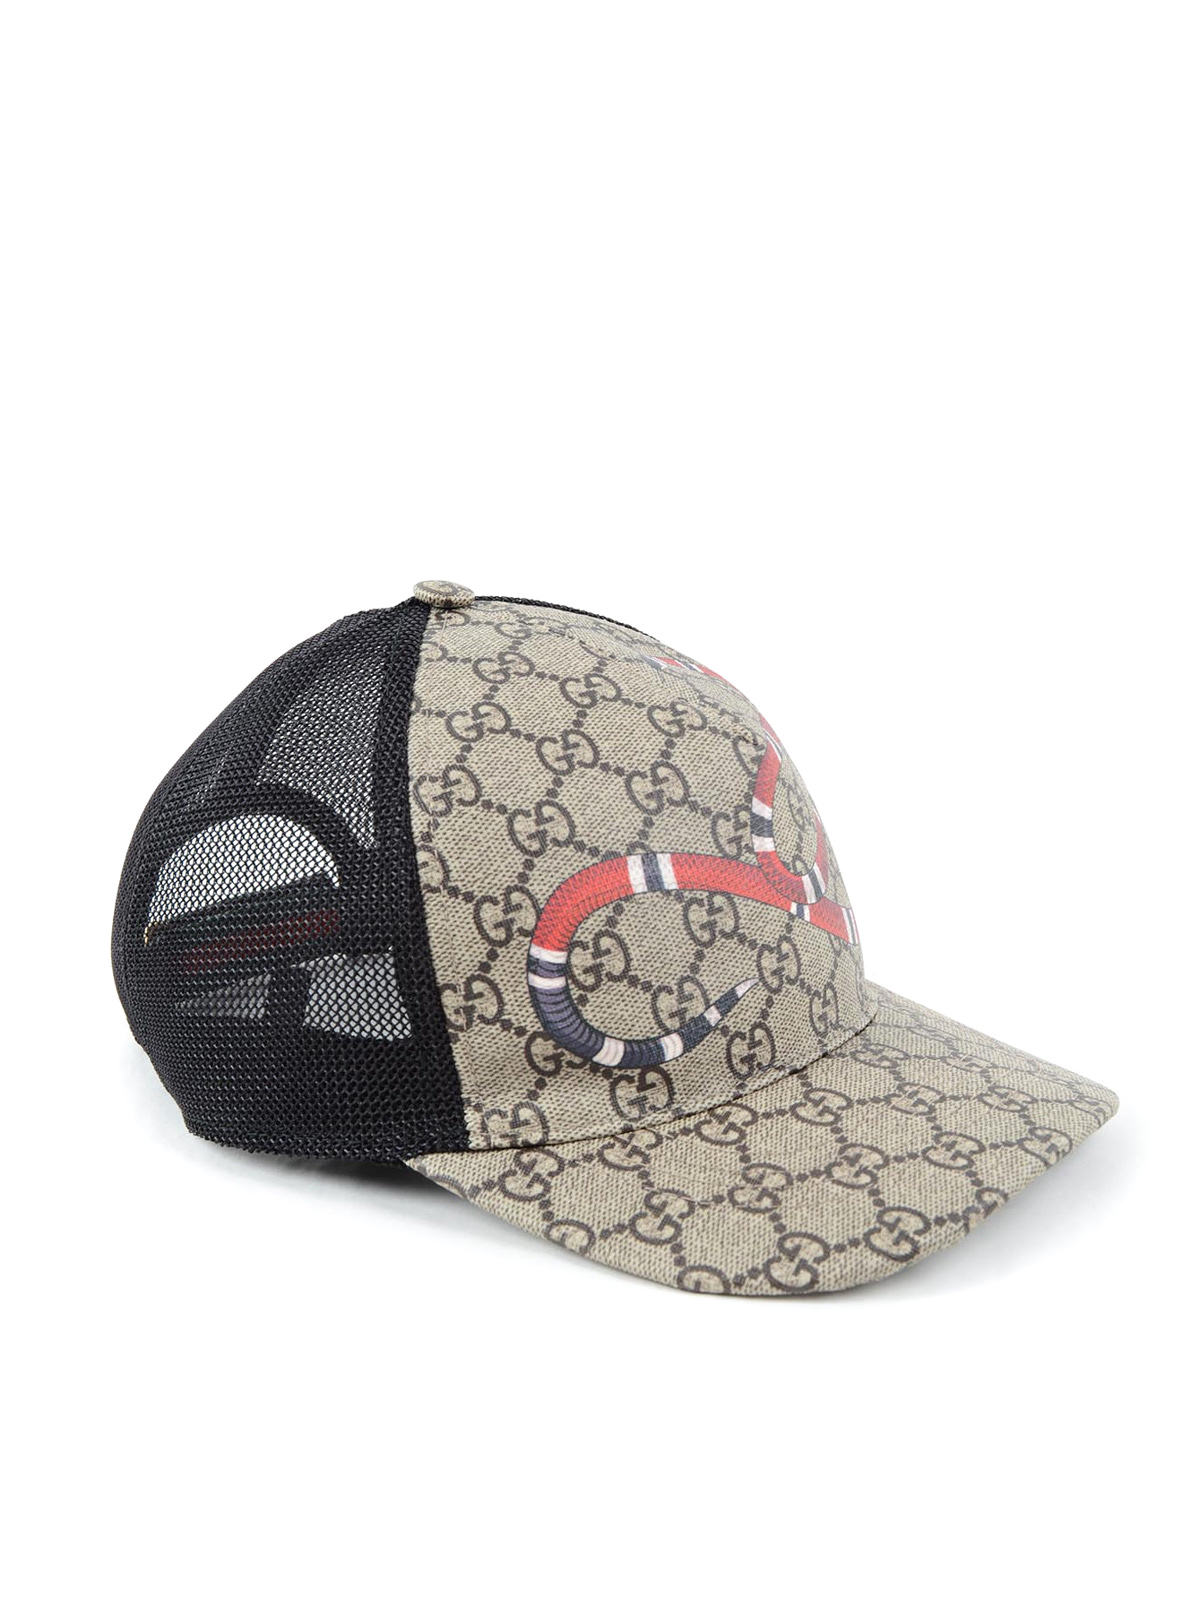 snake gg supreme baseball hat by gucci hats caps ikrix. Black Bedroom Furniture Sets. Home Design Ideas